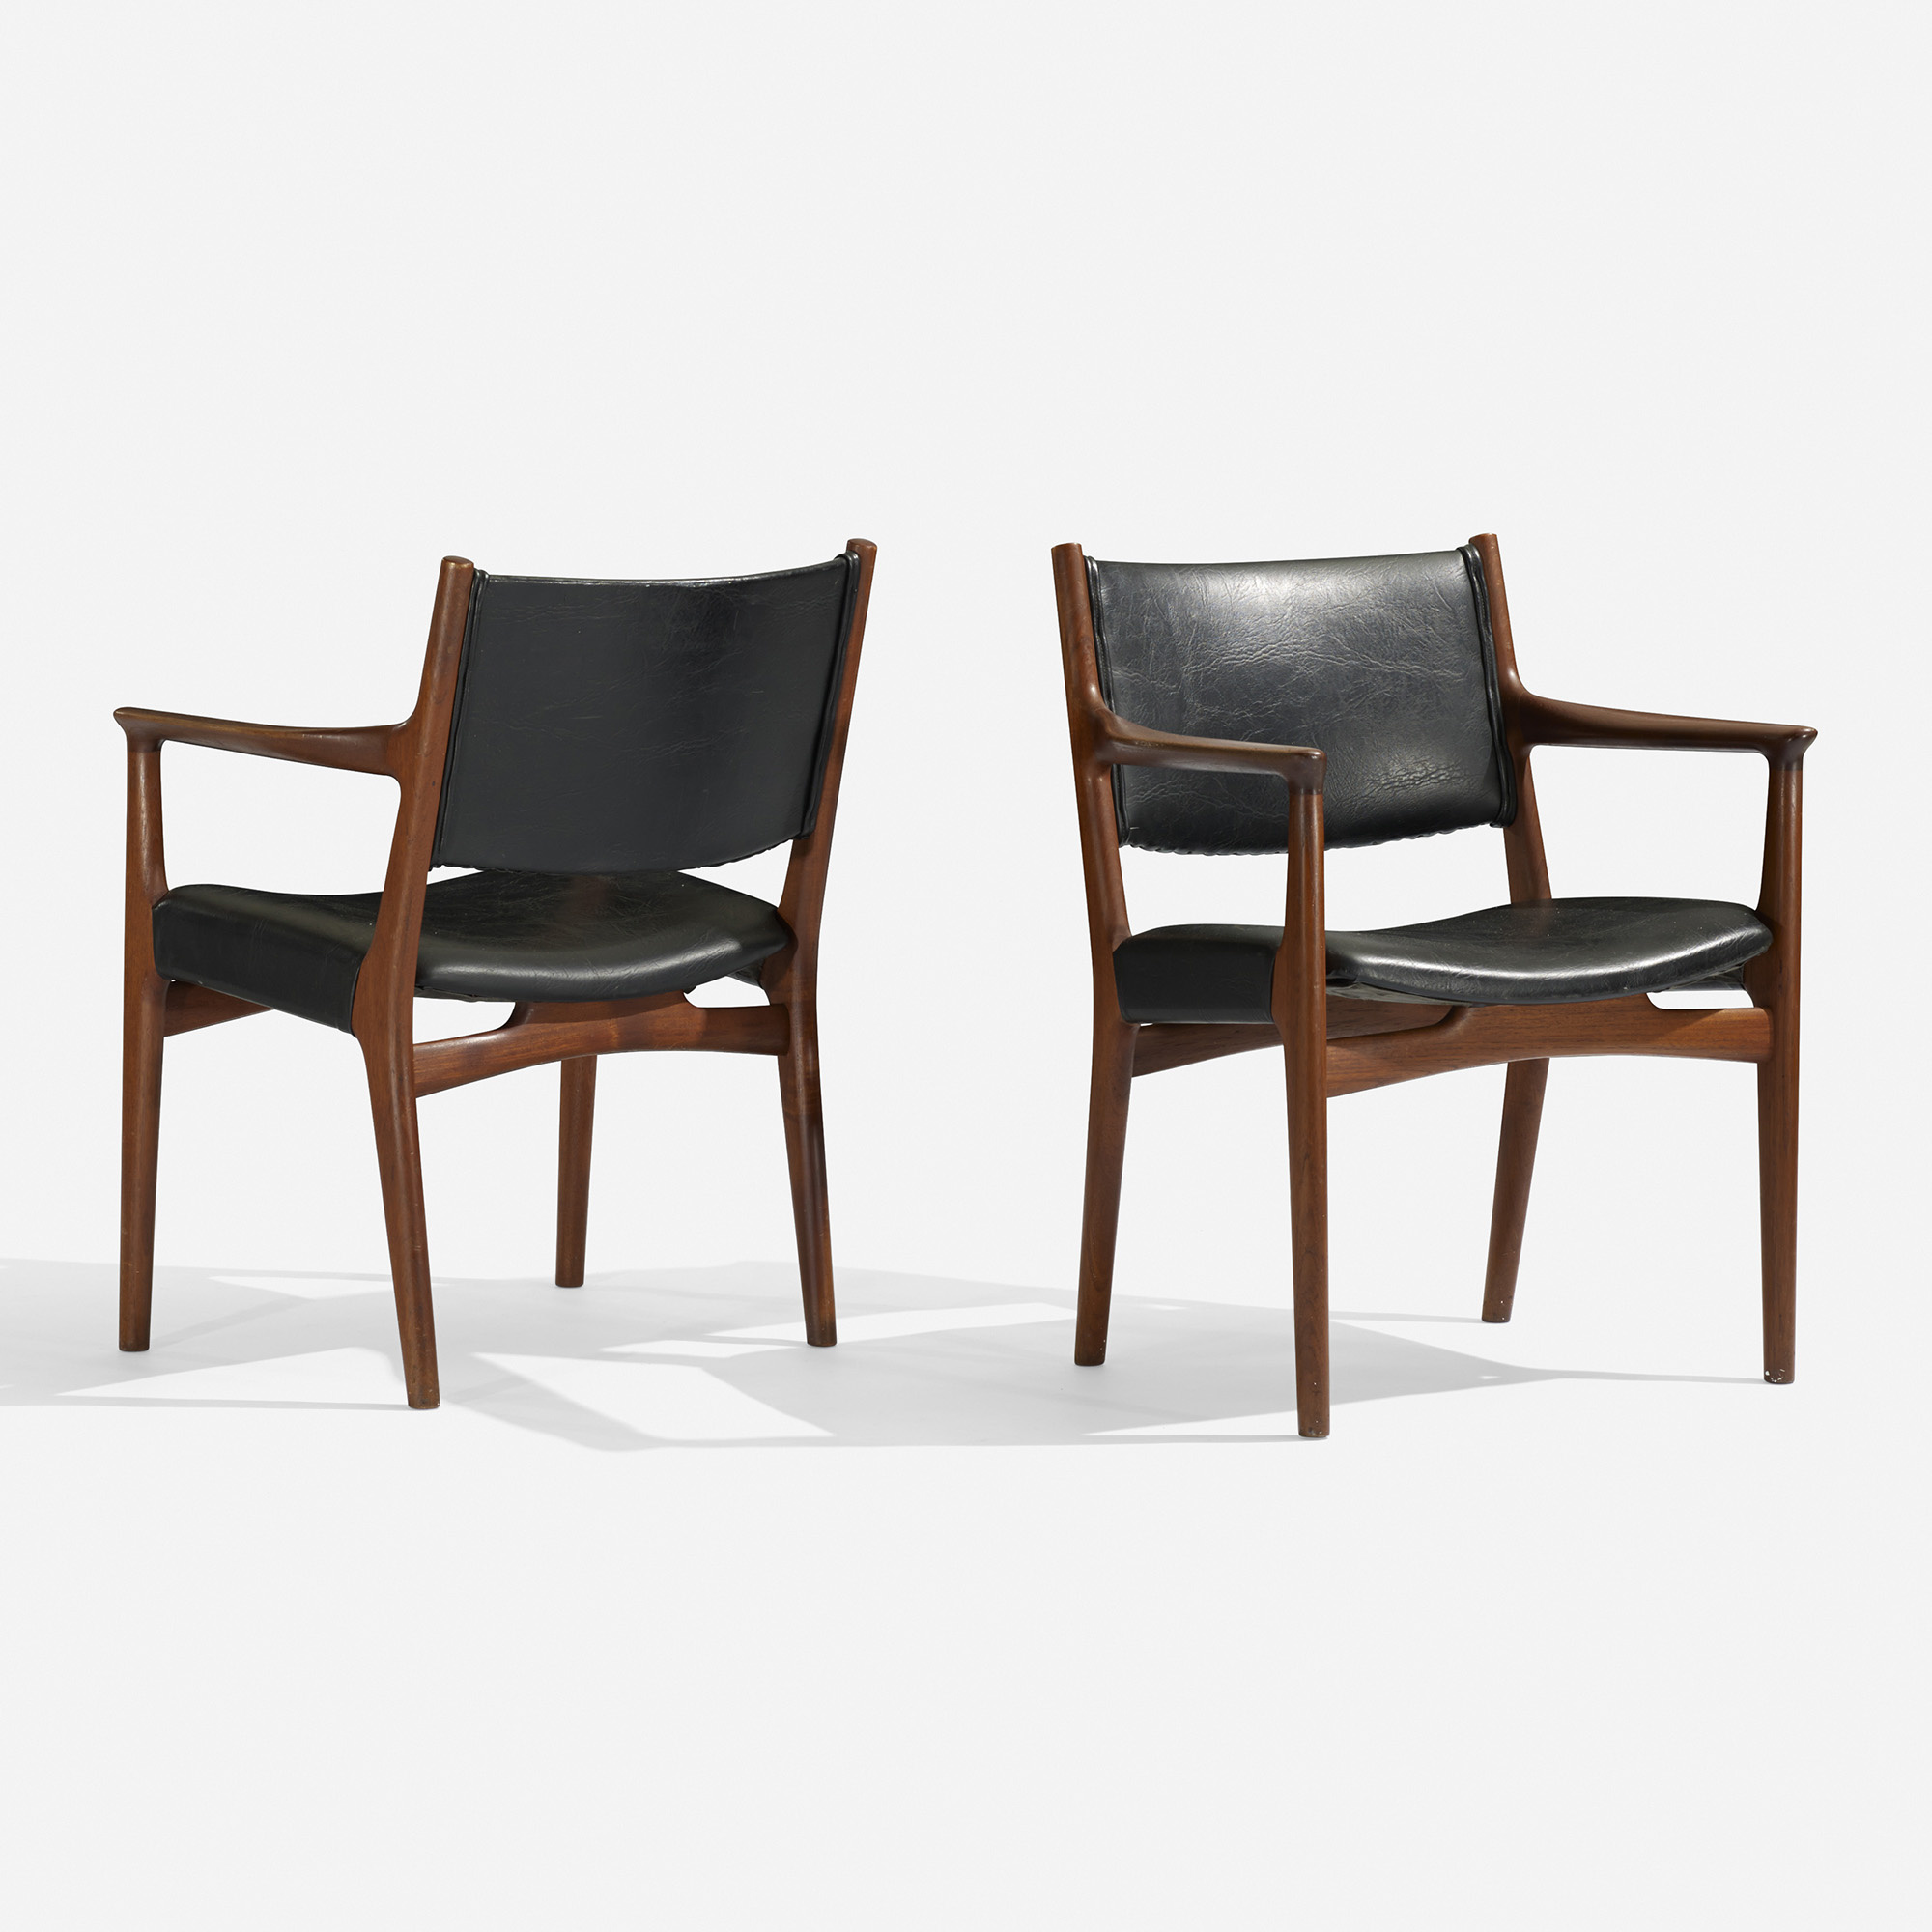 179 Hans J Wegner dining chairs model JH 525 set of six